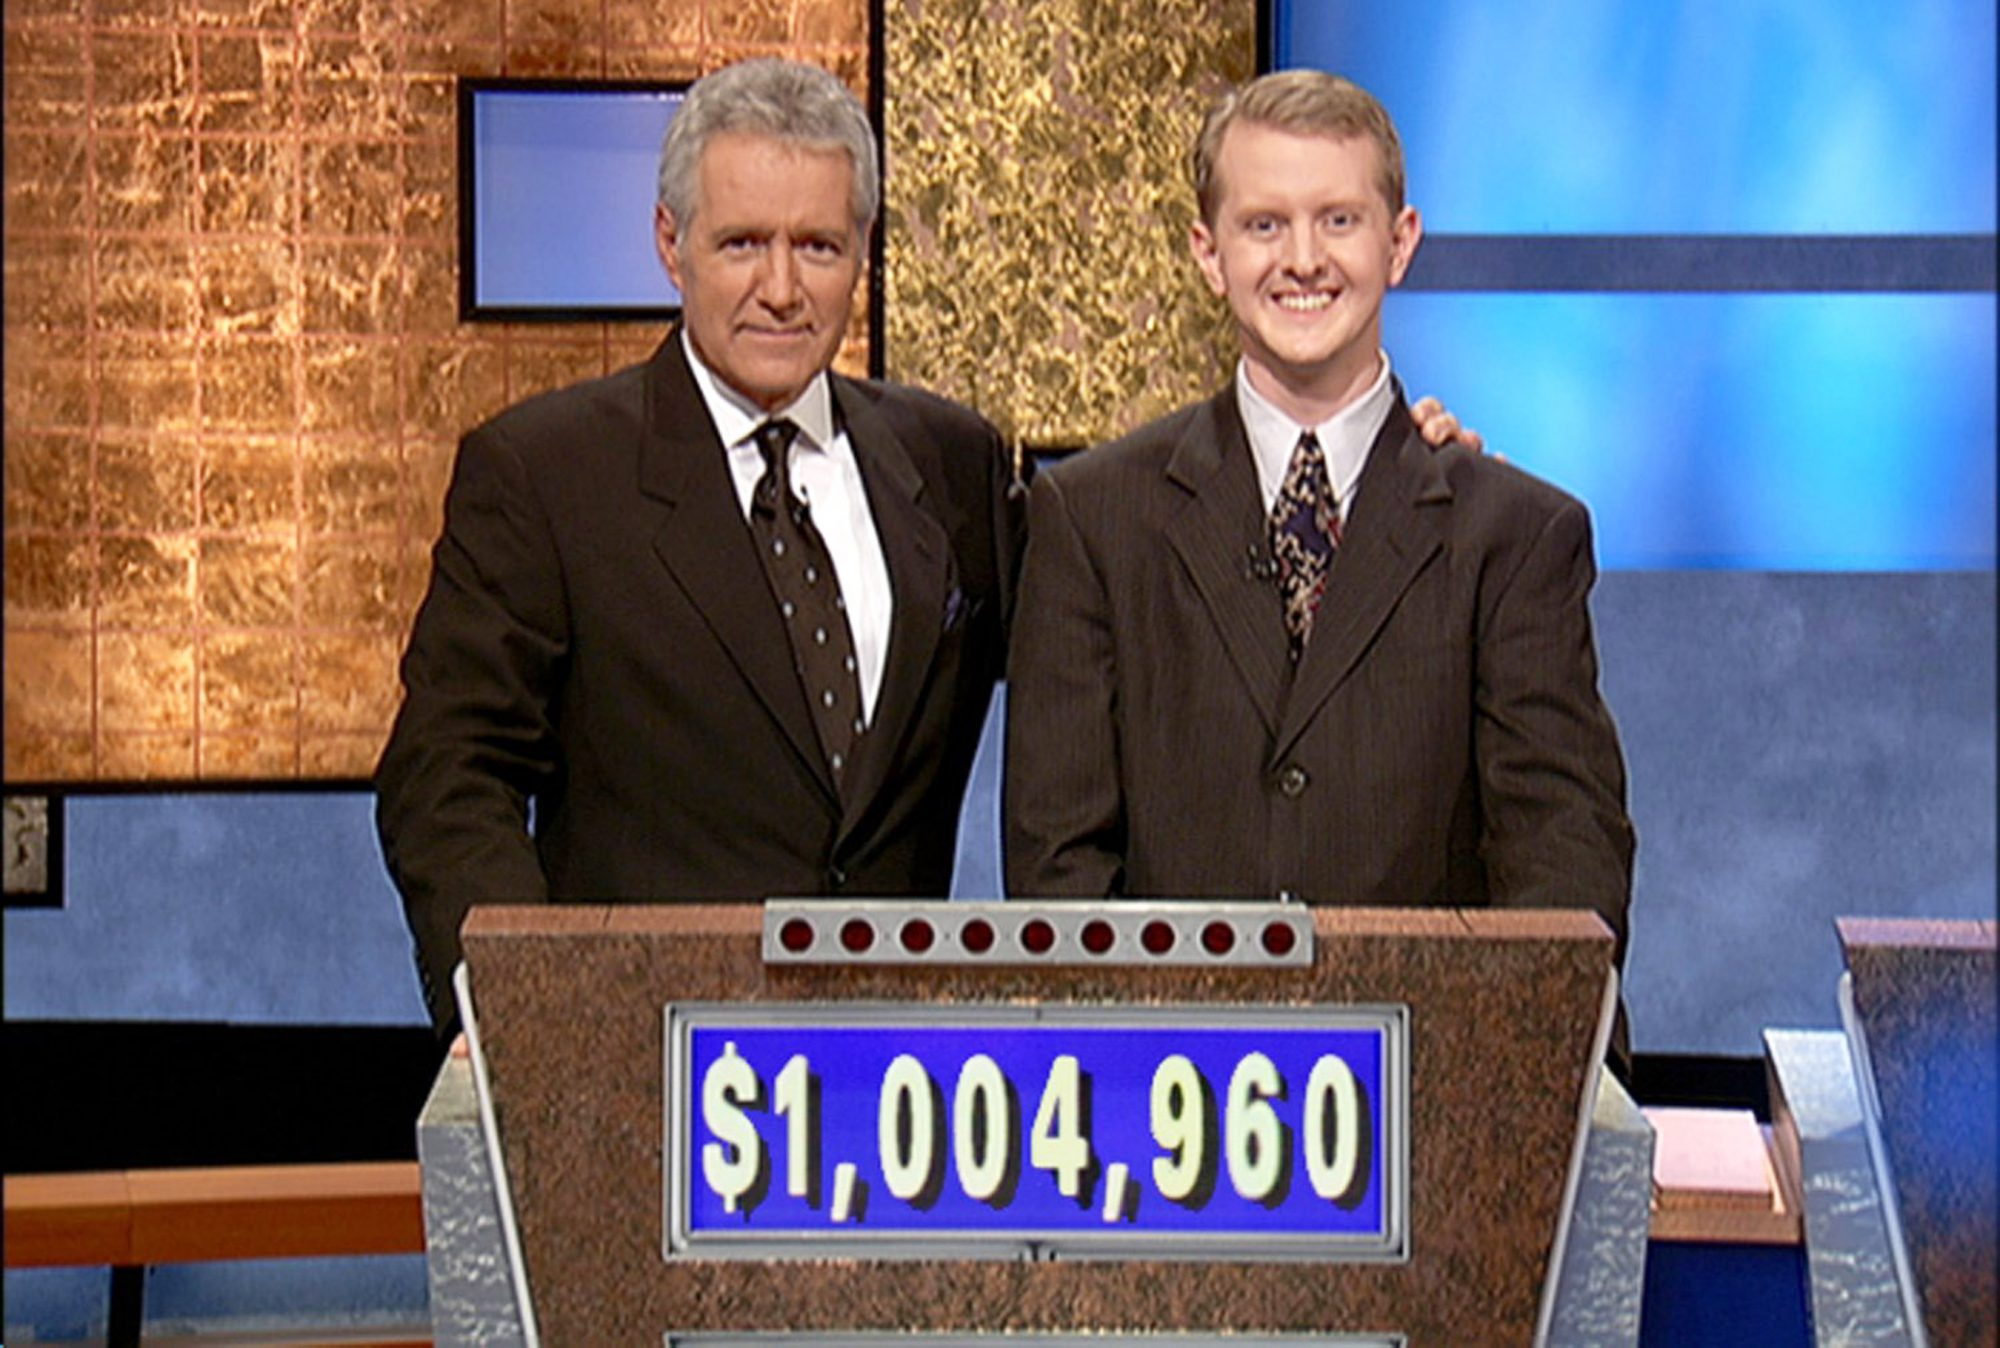 KEN JENNINGS BREAKS THE ONE MILLION DOLLAR MARK ON THE 'JEOPARDY' TV SHOW, CULVER CITY, CALIFORNIA, AMERICA - 14 JUL 2004